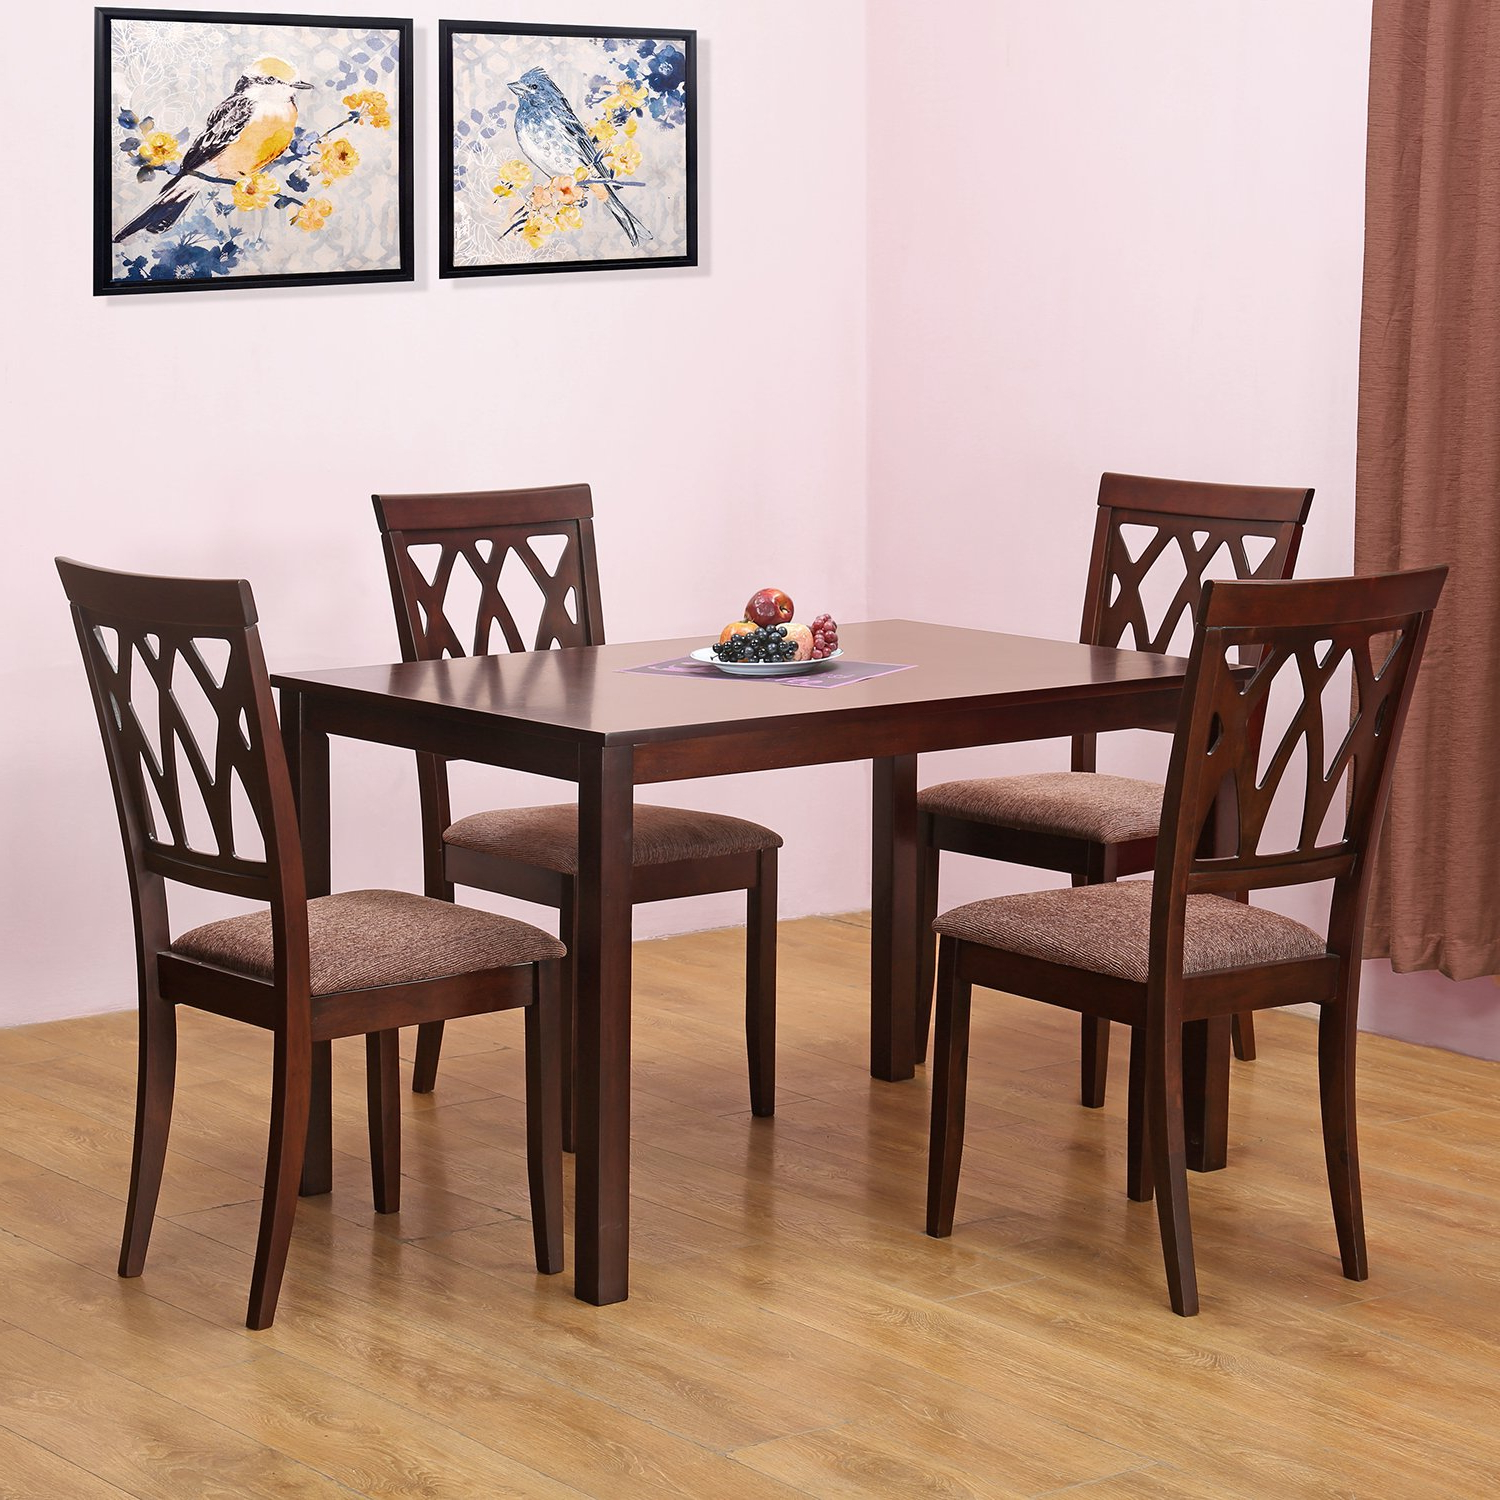 Homenilkamal Peak Four Seater Dining Table Set (Cappucino Throughout Well Known Frida 3 Piece Dining Table Sets (View 16 of 25)